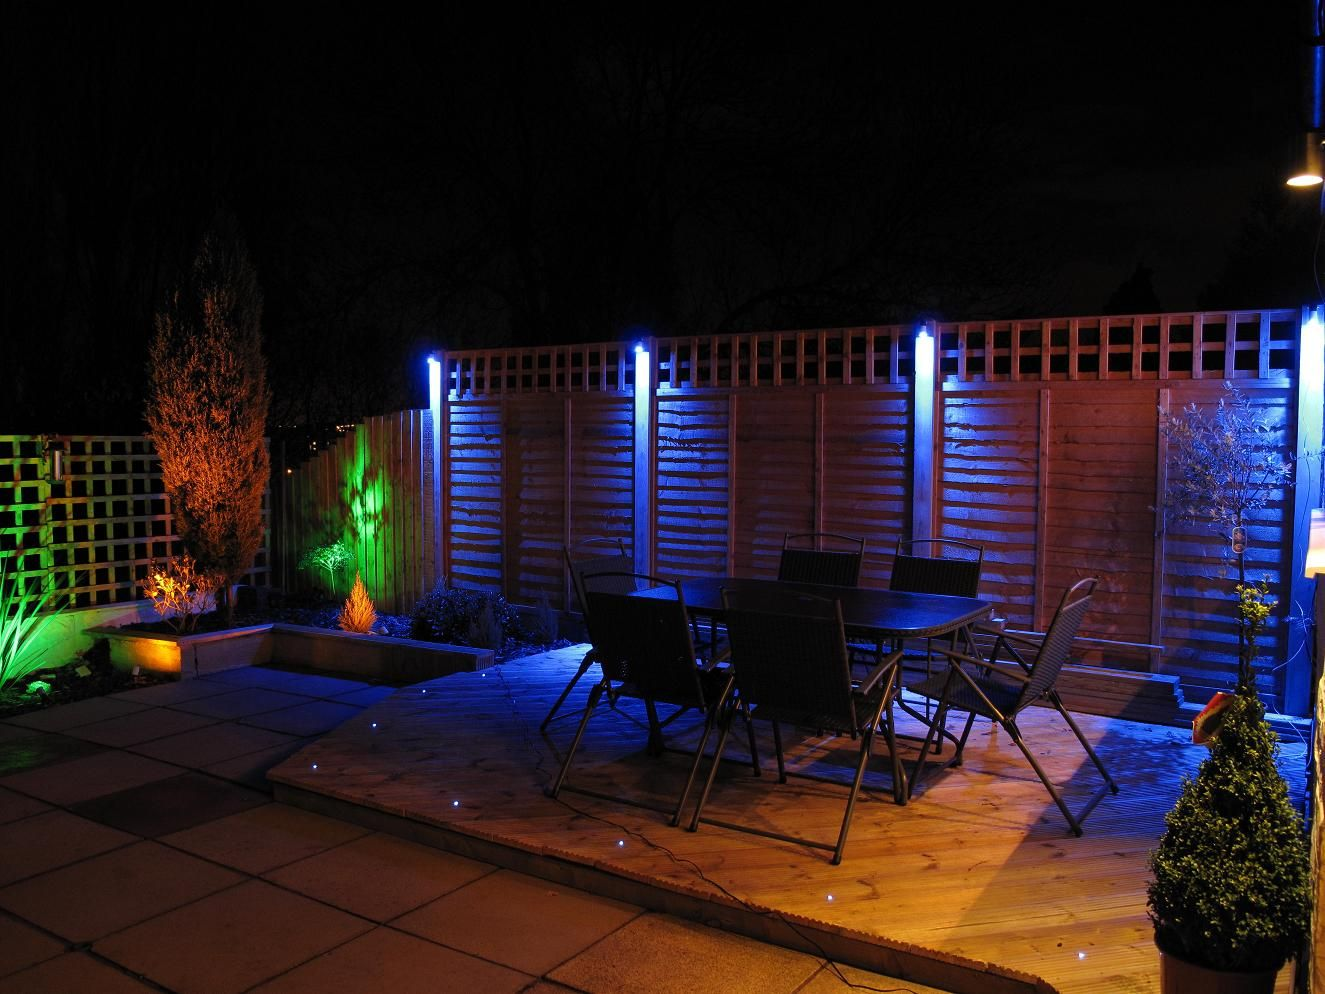 Outdoor LED Garden Lights Give your garden a festive look and feel